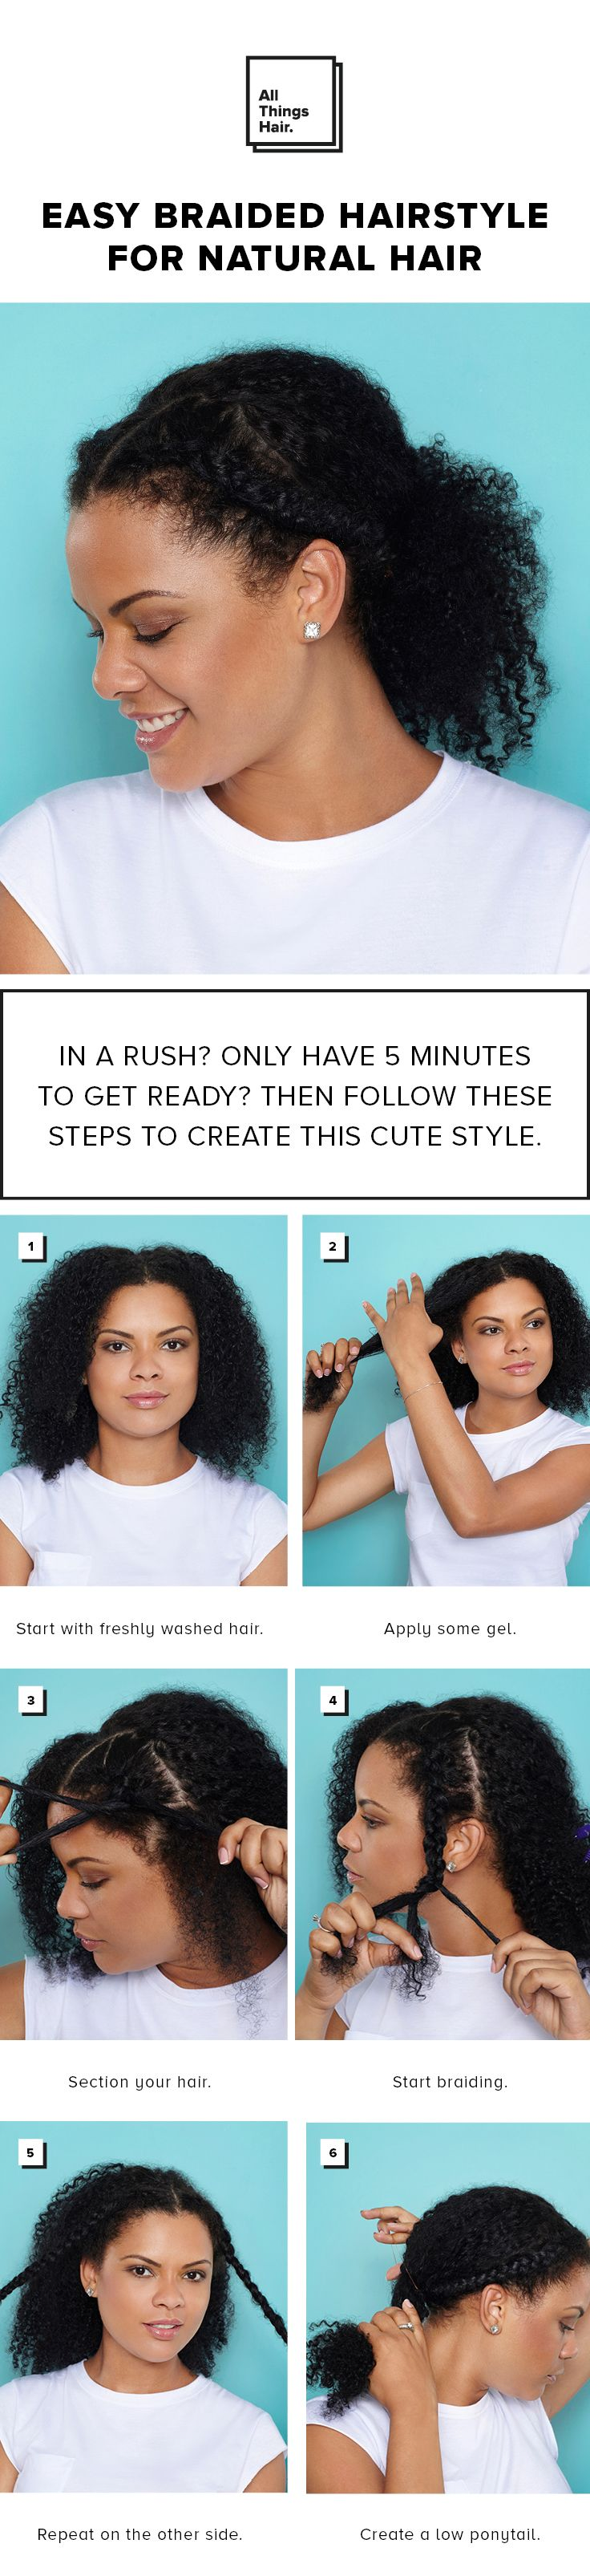 17 best team natural hair images on pinterest hairstyles 6 simple steps to create this cute and easy natural hairstyle perfect for those days you find yourself in a rush solutioingenieria Images